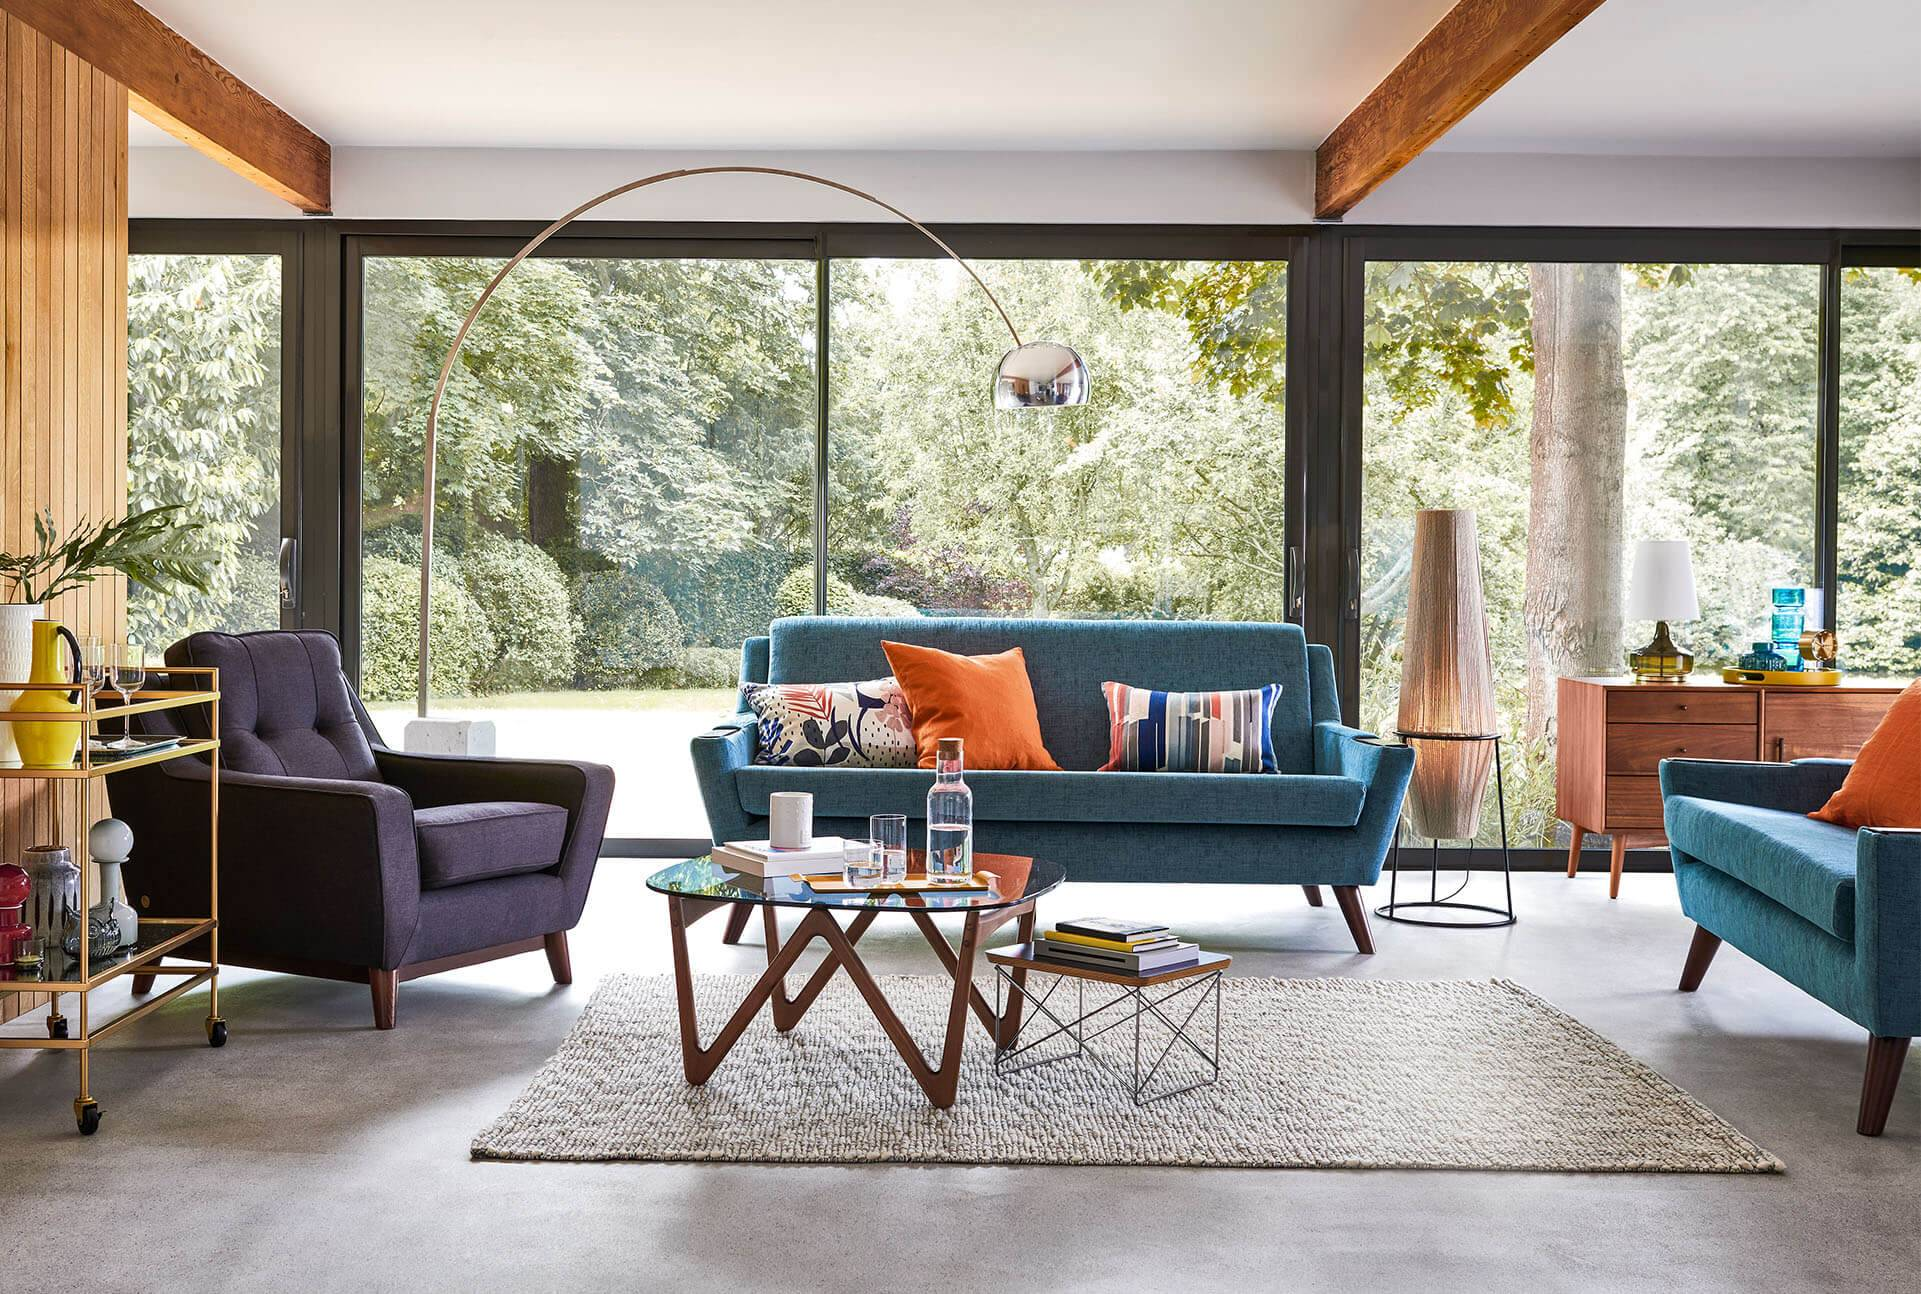 How To Style The John Lewis Interior Design Trends For A/W 2018